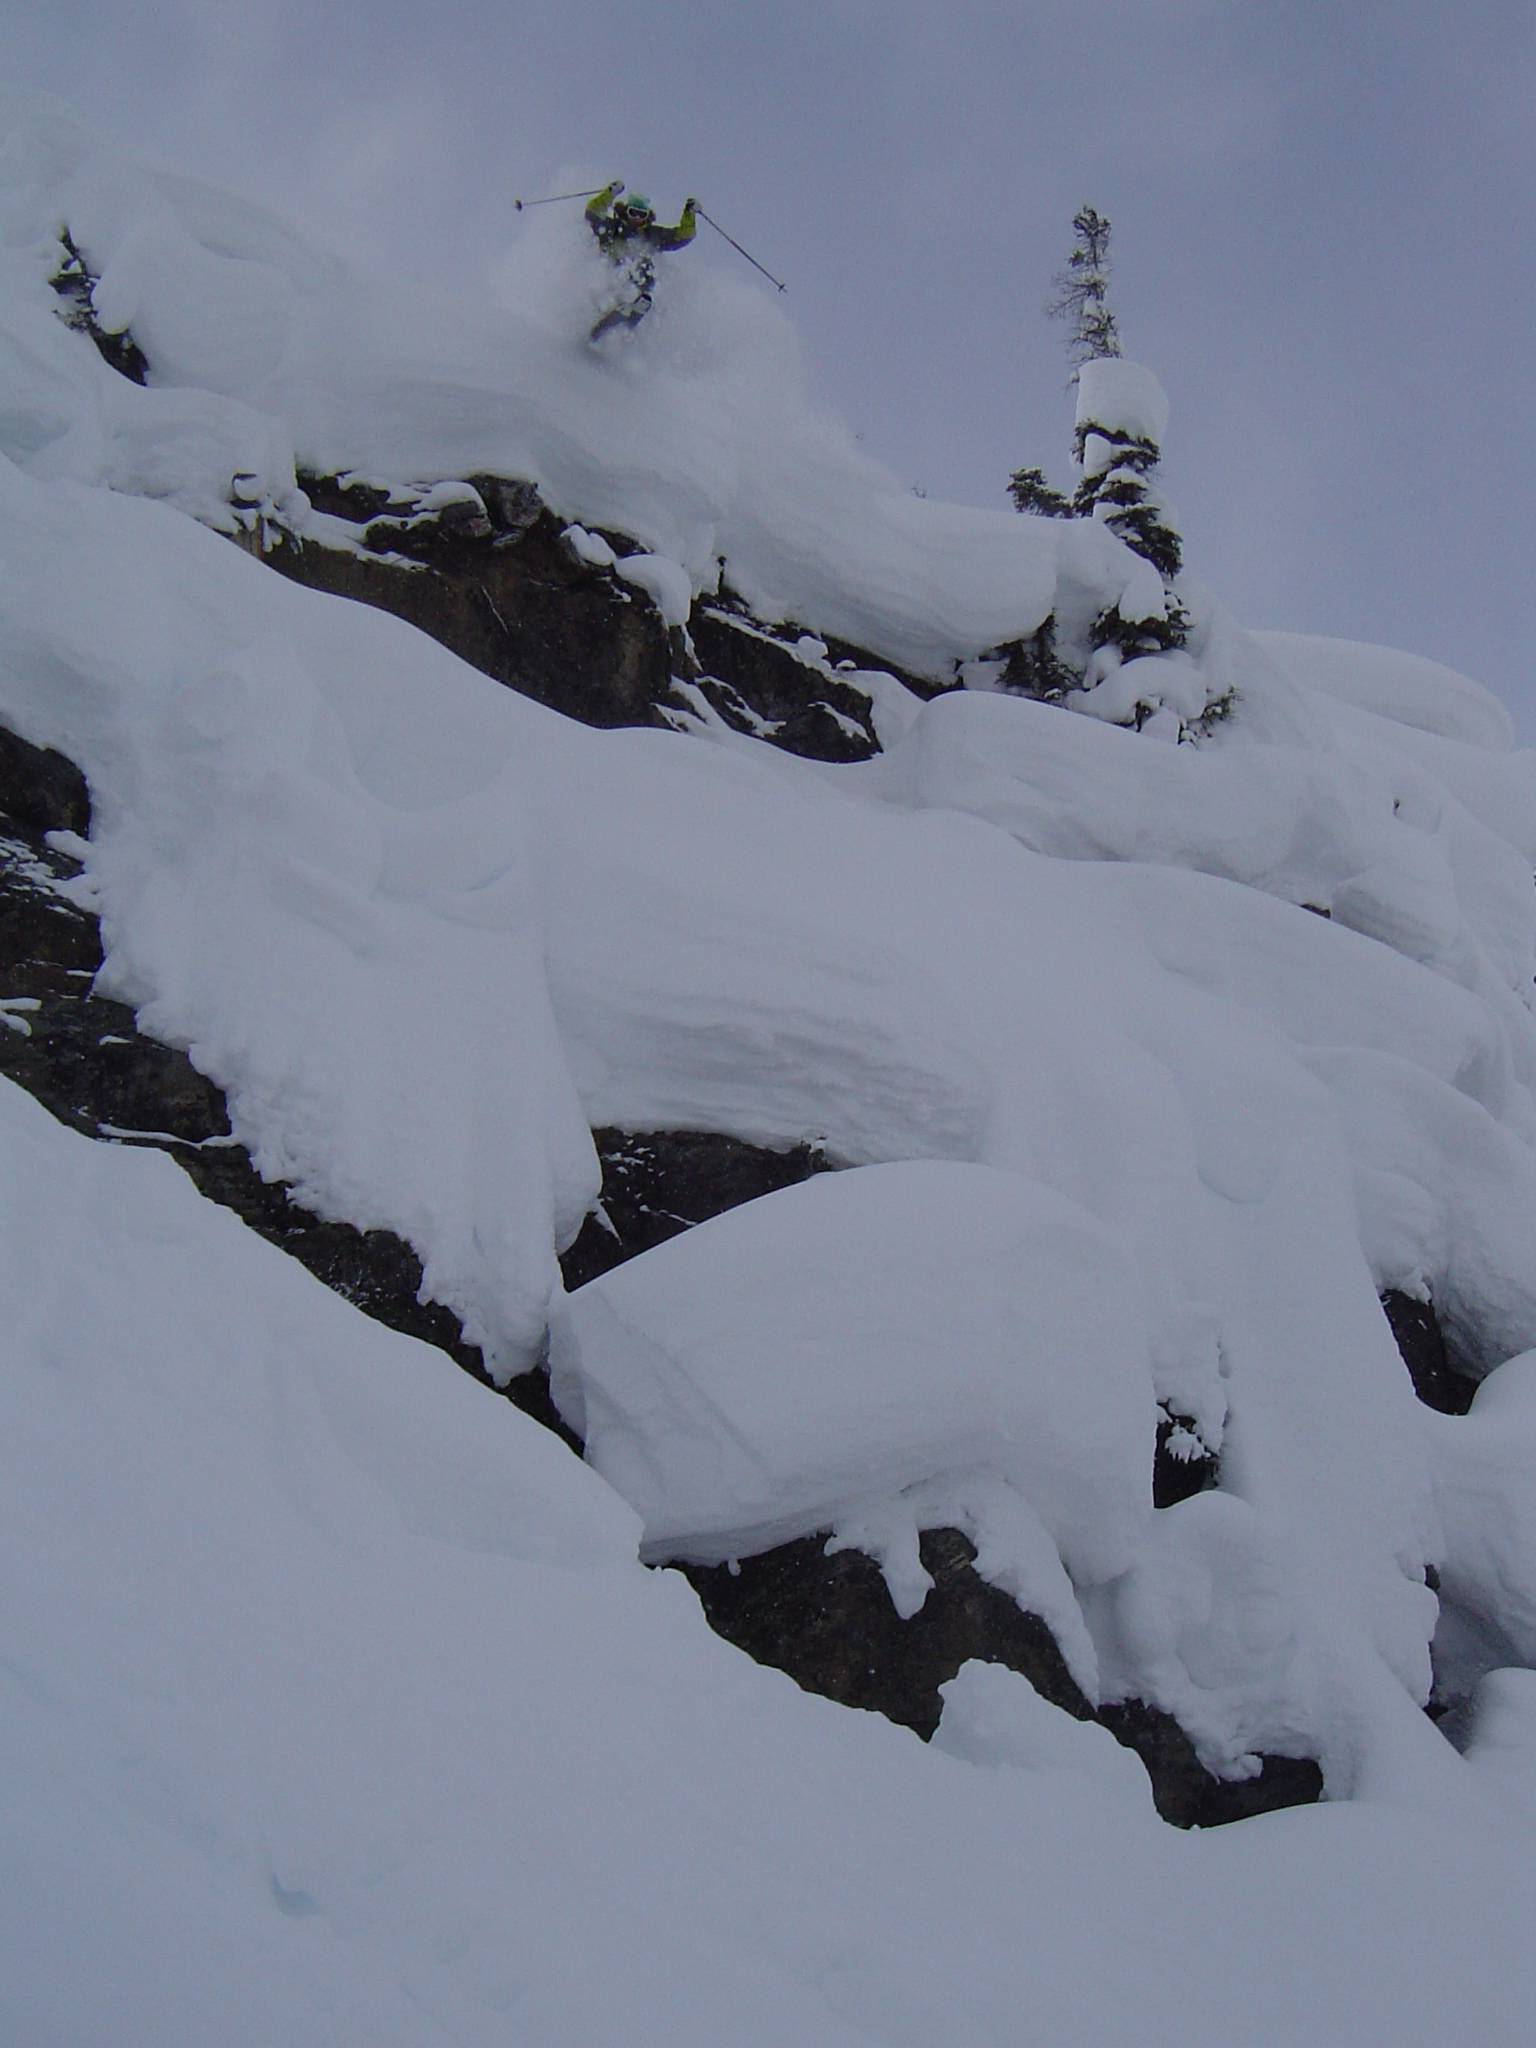 If you can't stomp it on Renegades, you can't stomp it. Hjorleifson at Sentry Mtn Lodge.